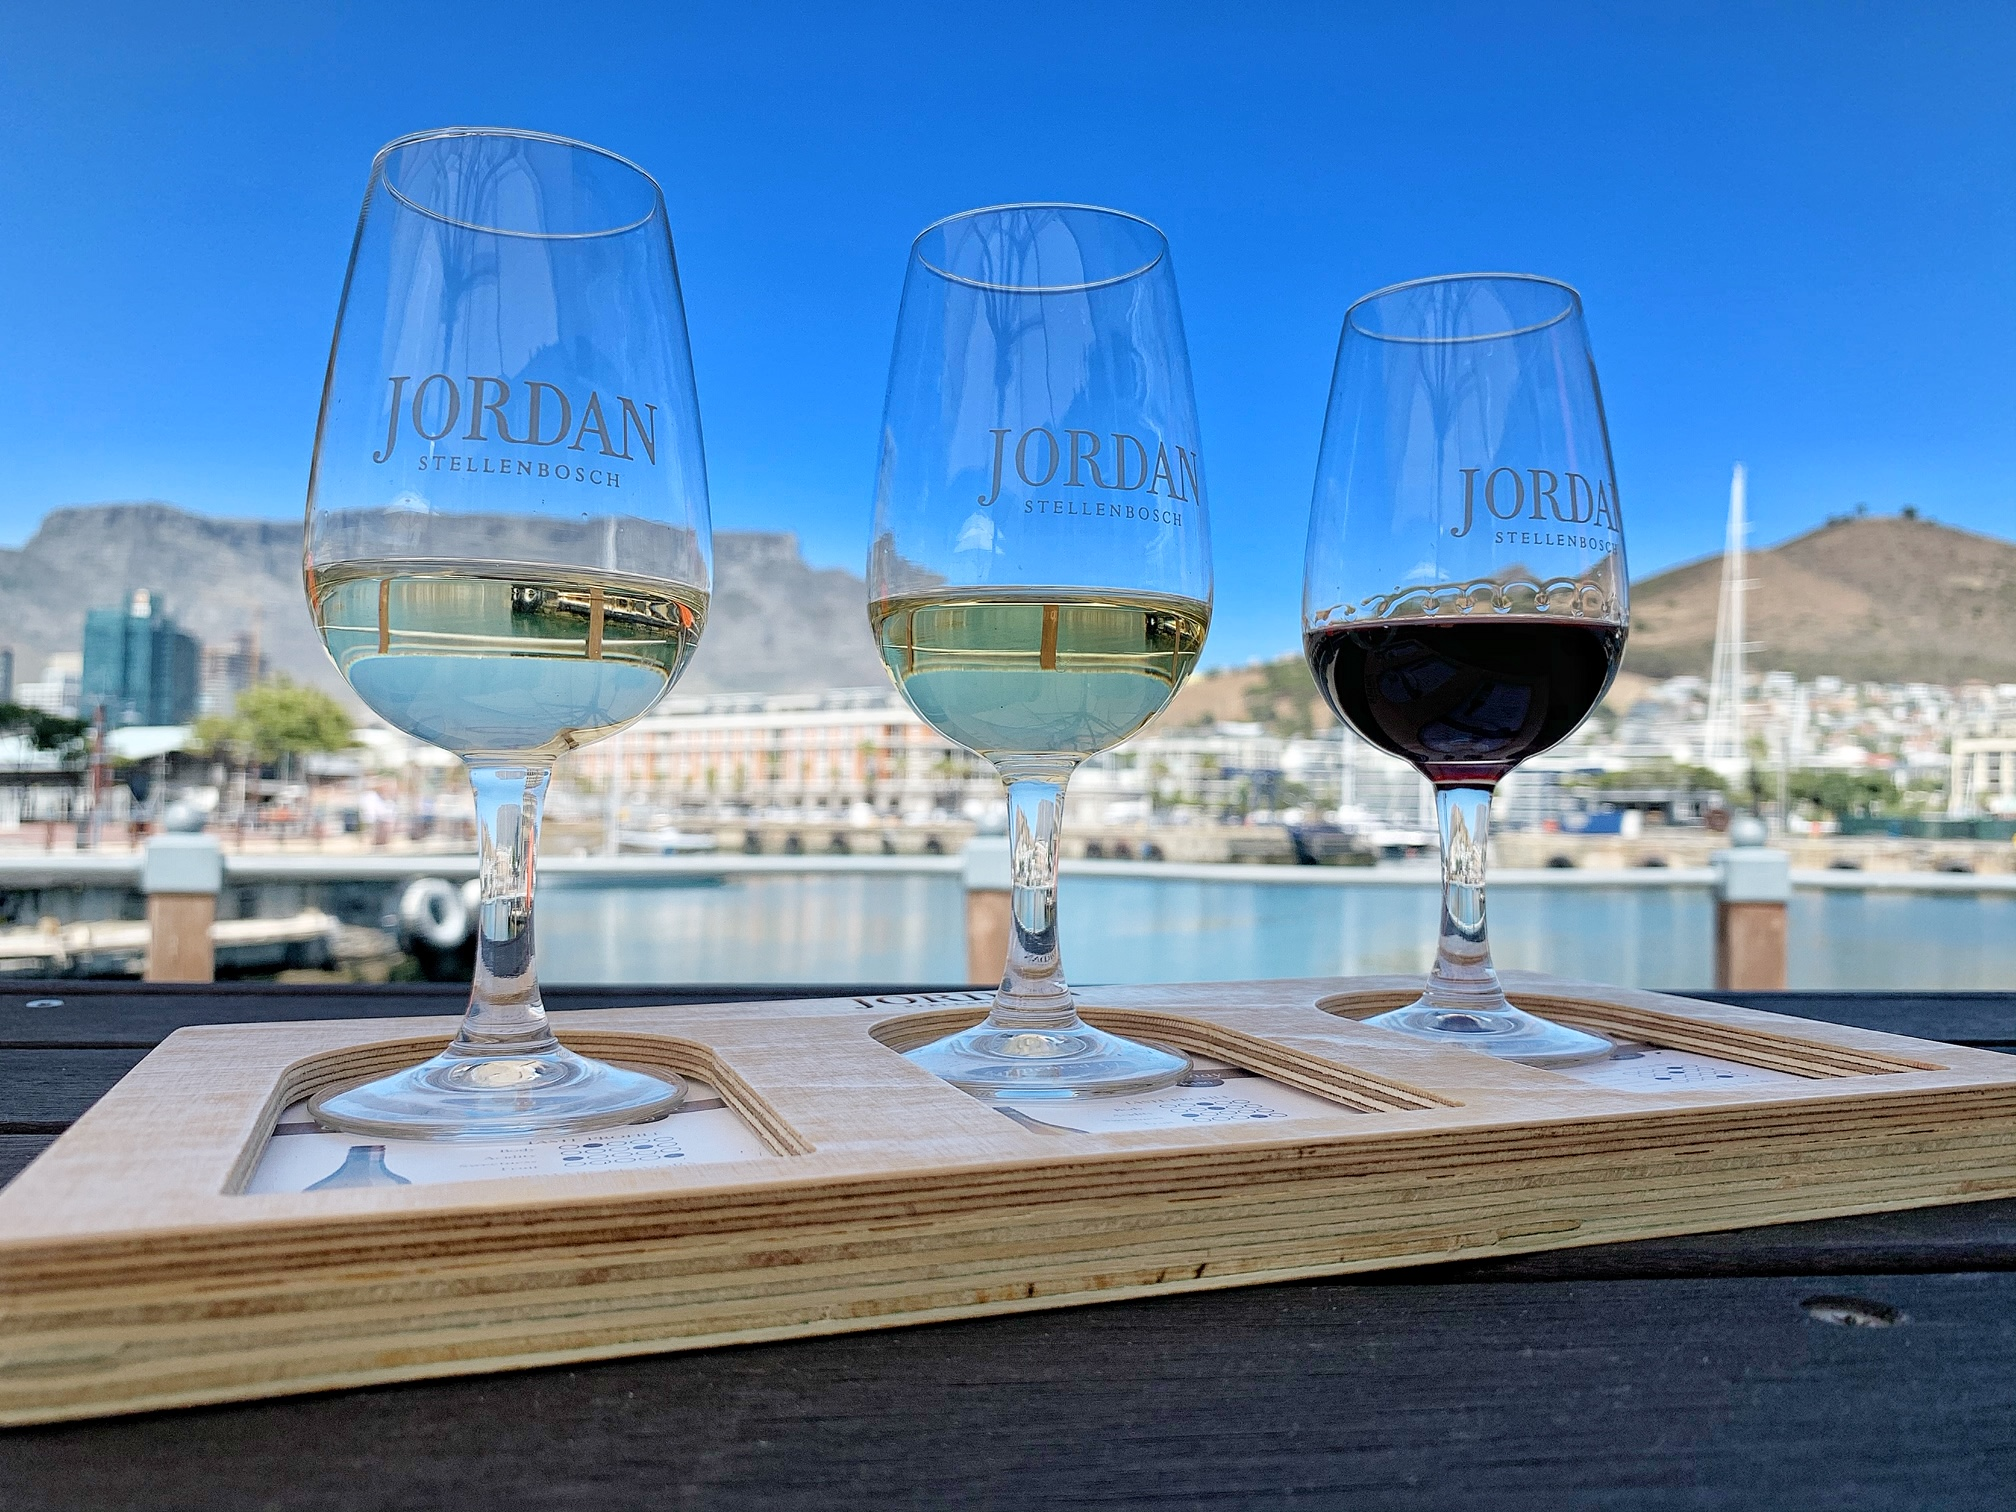 #11DaysOfLockDown / Day 21: Add A Jordan Wine Tasting At Den Anker To Your list photo